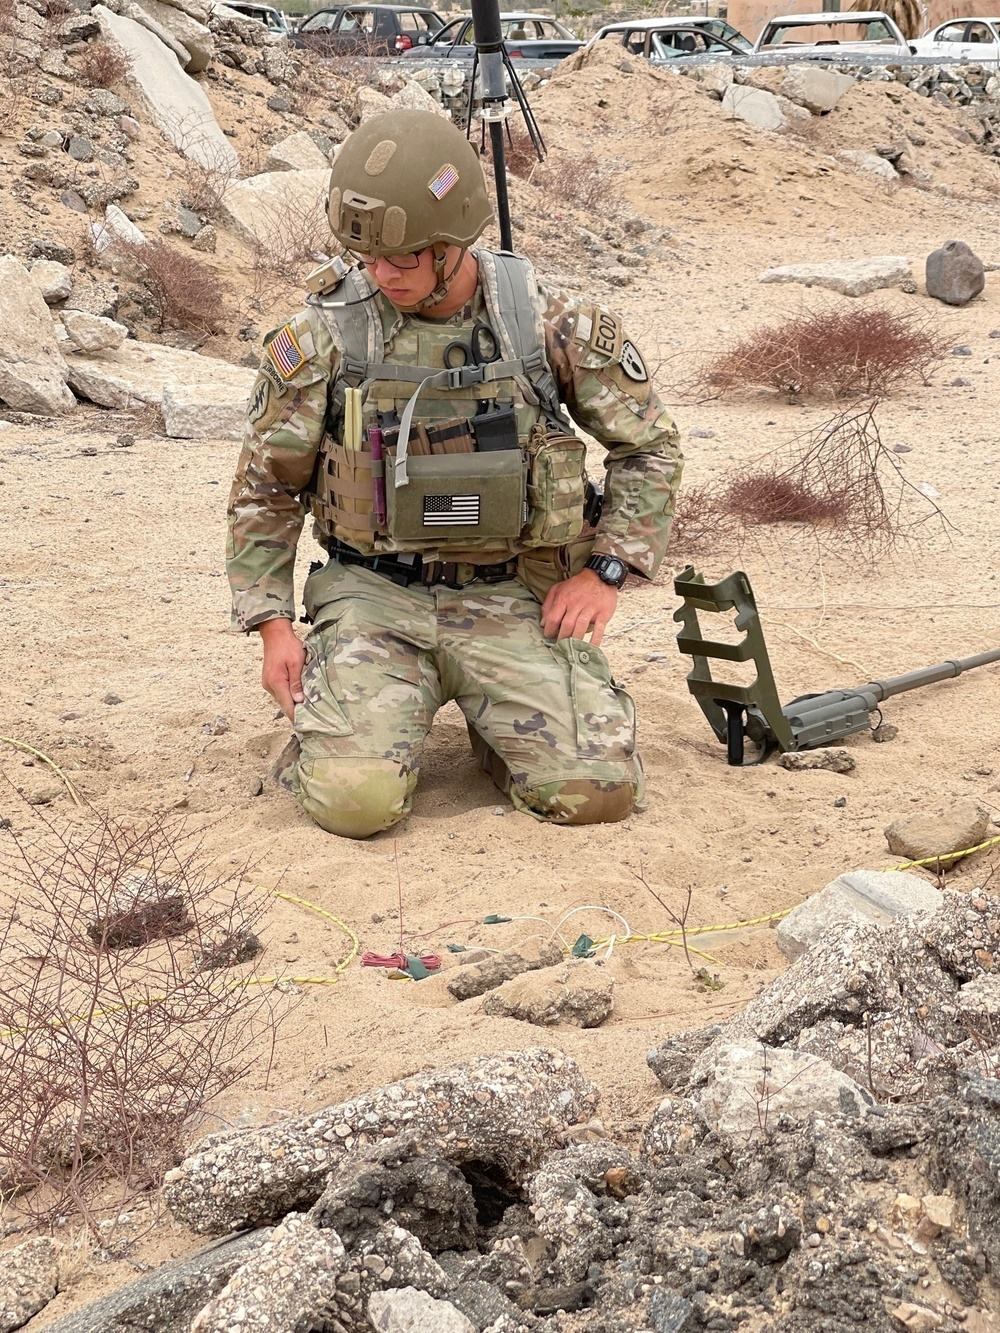 U.S. Army Explosive Ordnance Disposal Soldiers tackle critical missions around world